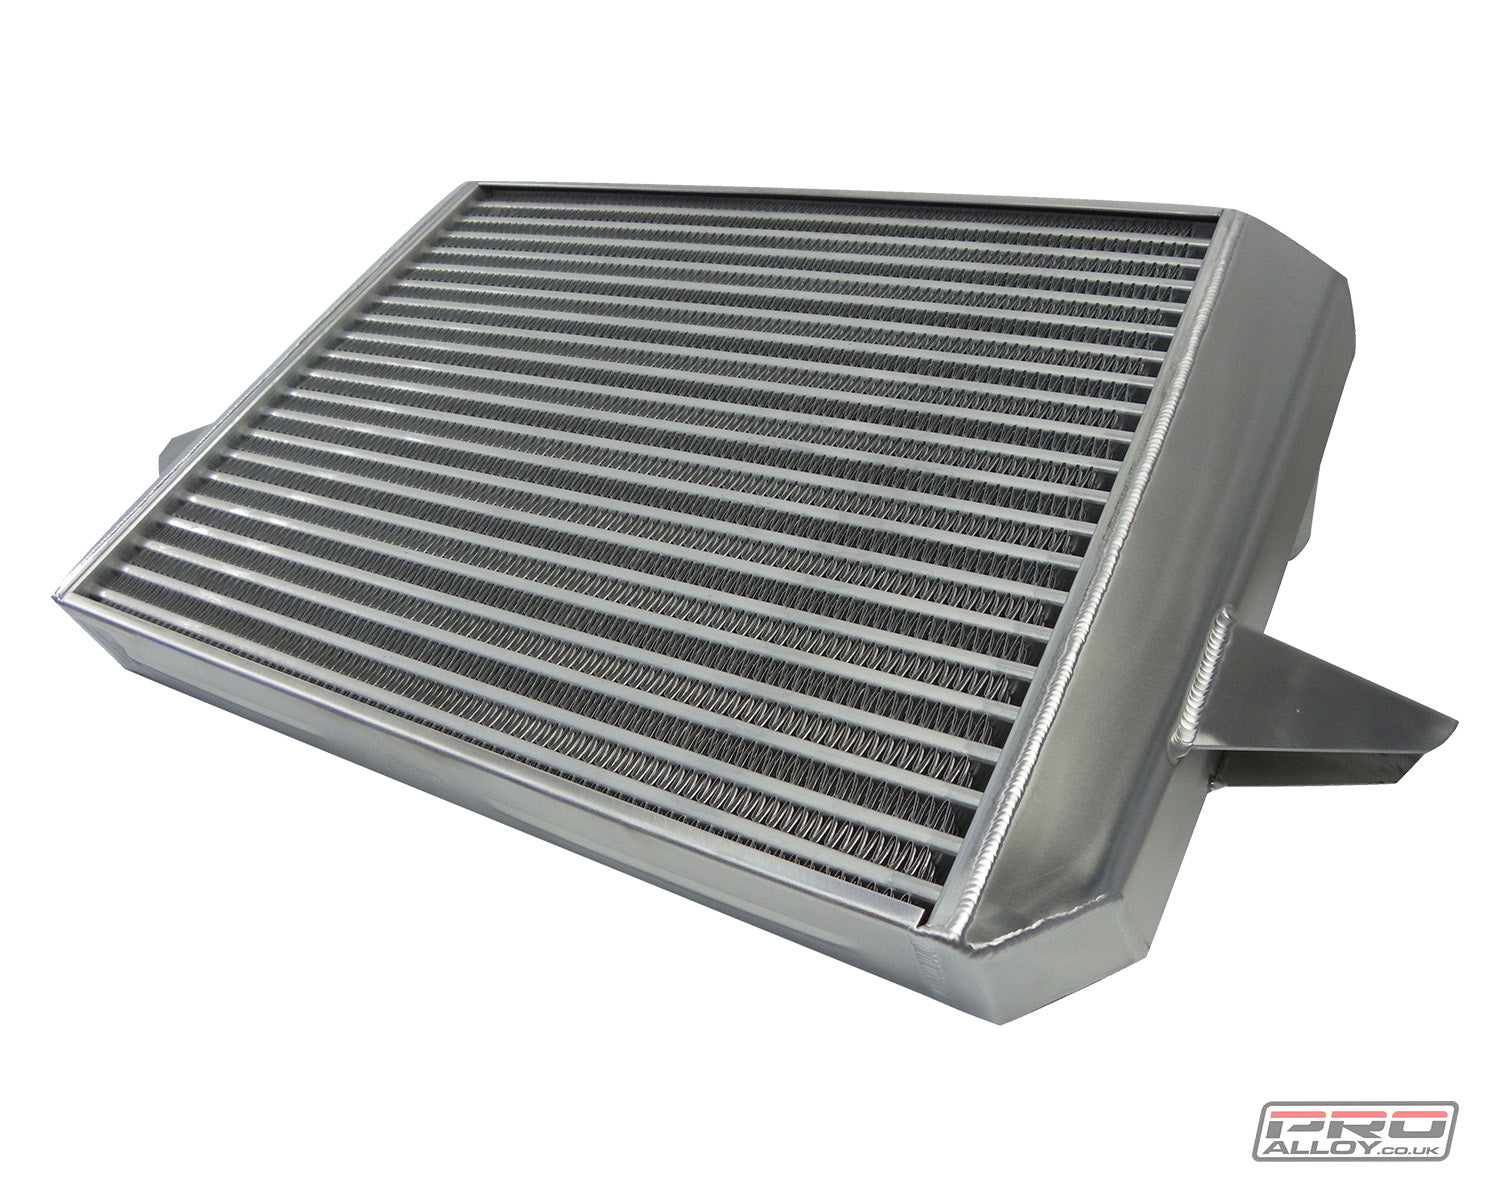 Escort Cosworth Intercooler - 50mm